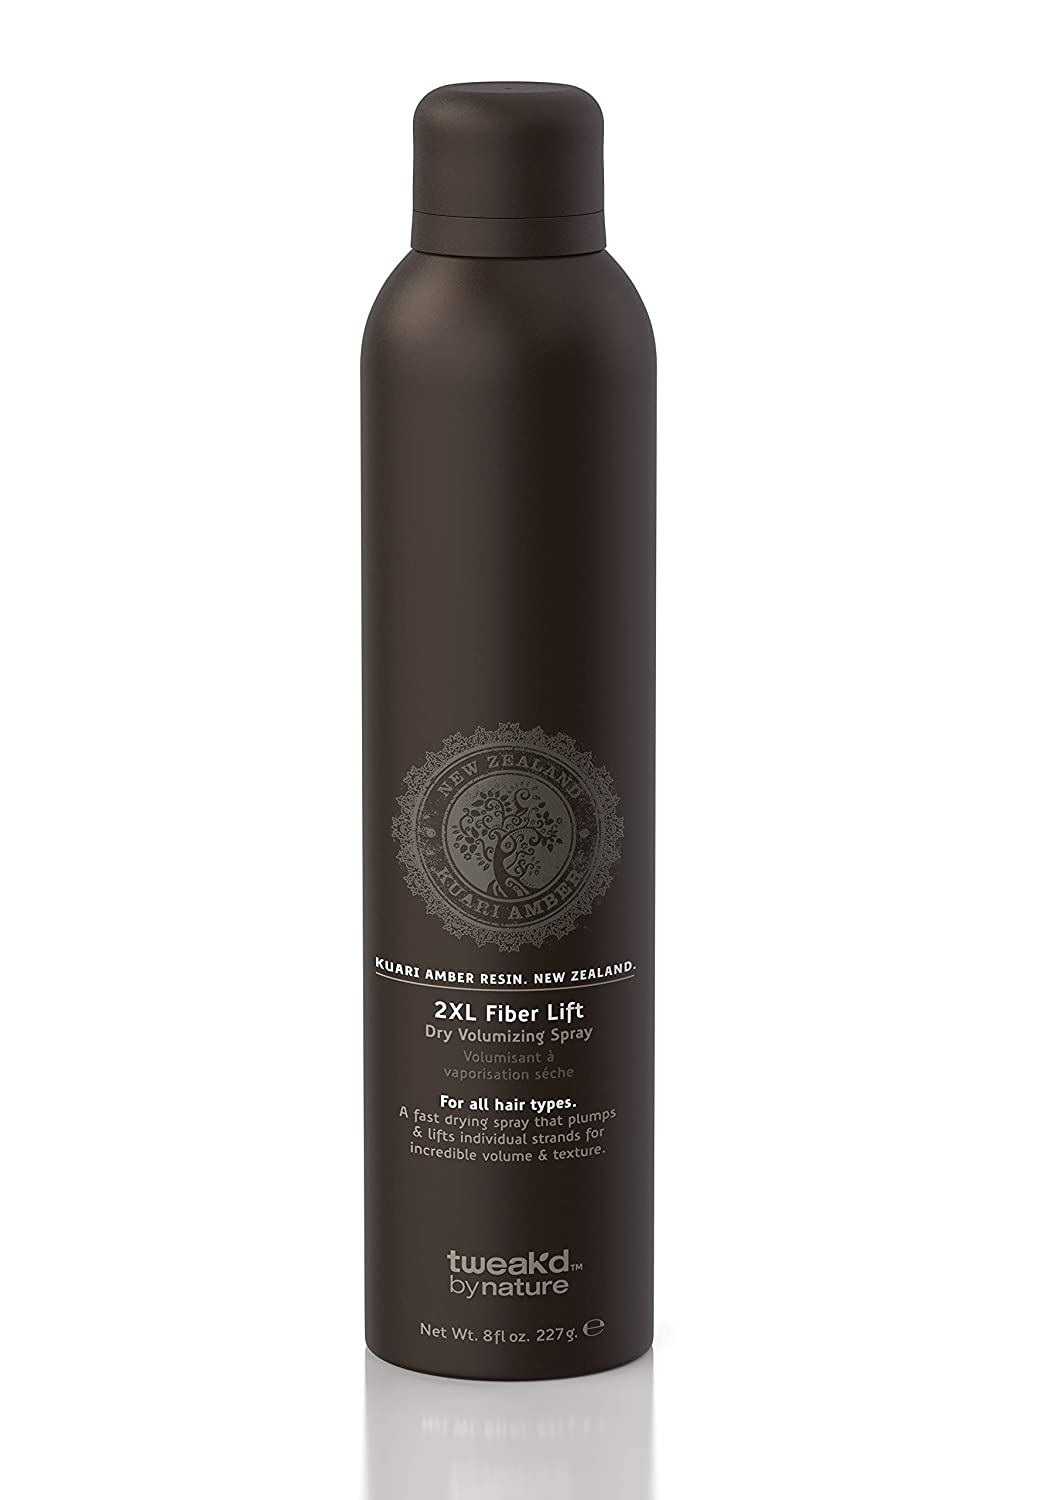 Tweak'd 2XL Fiber Lift Dry Volumizing Spray Kauri Amber Resin 8 oz